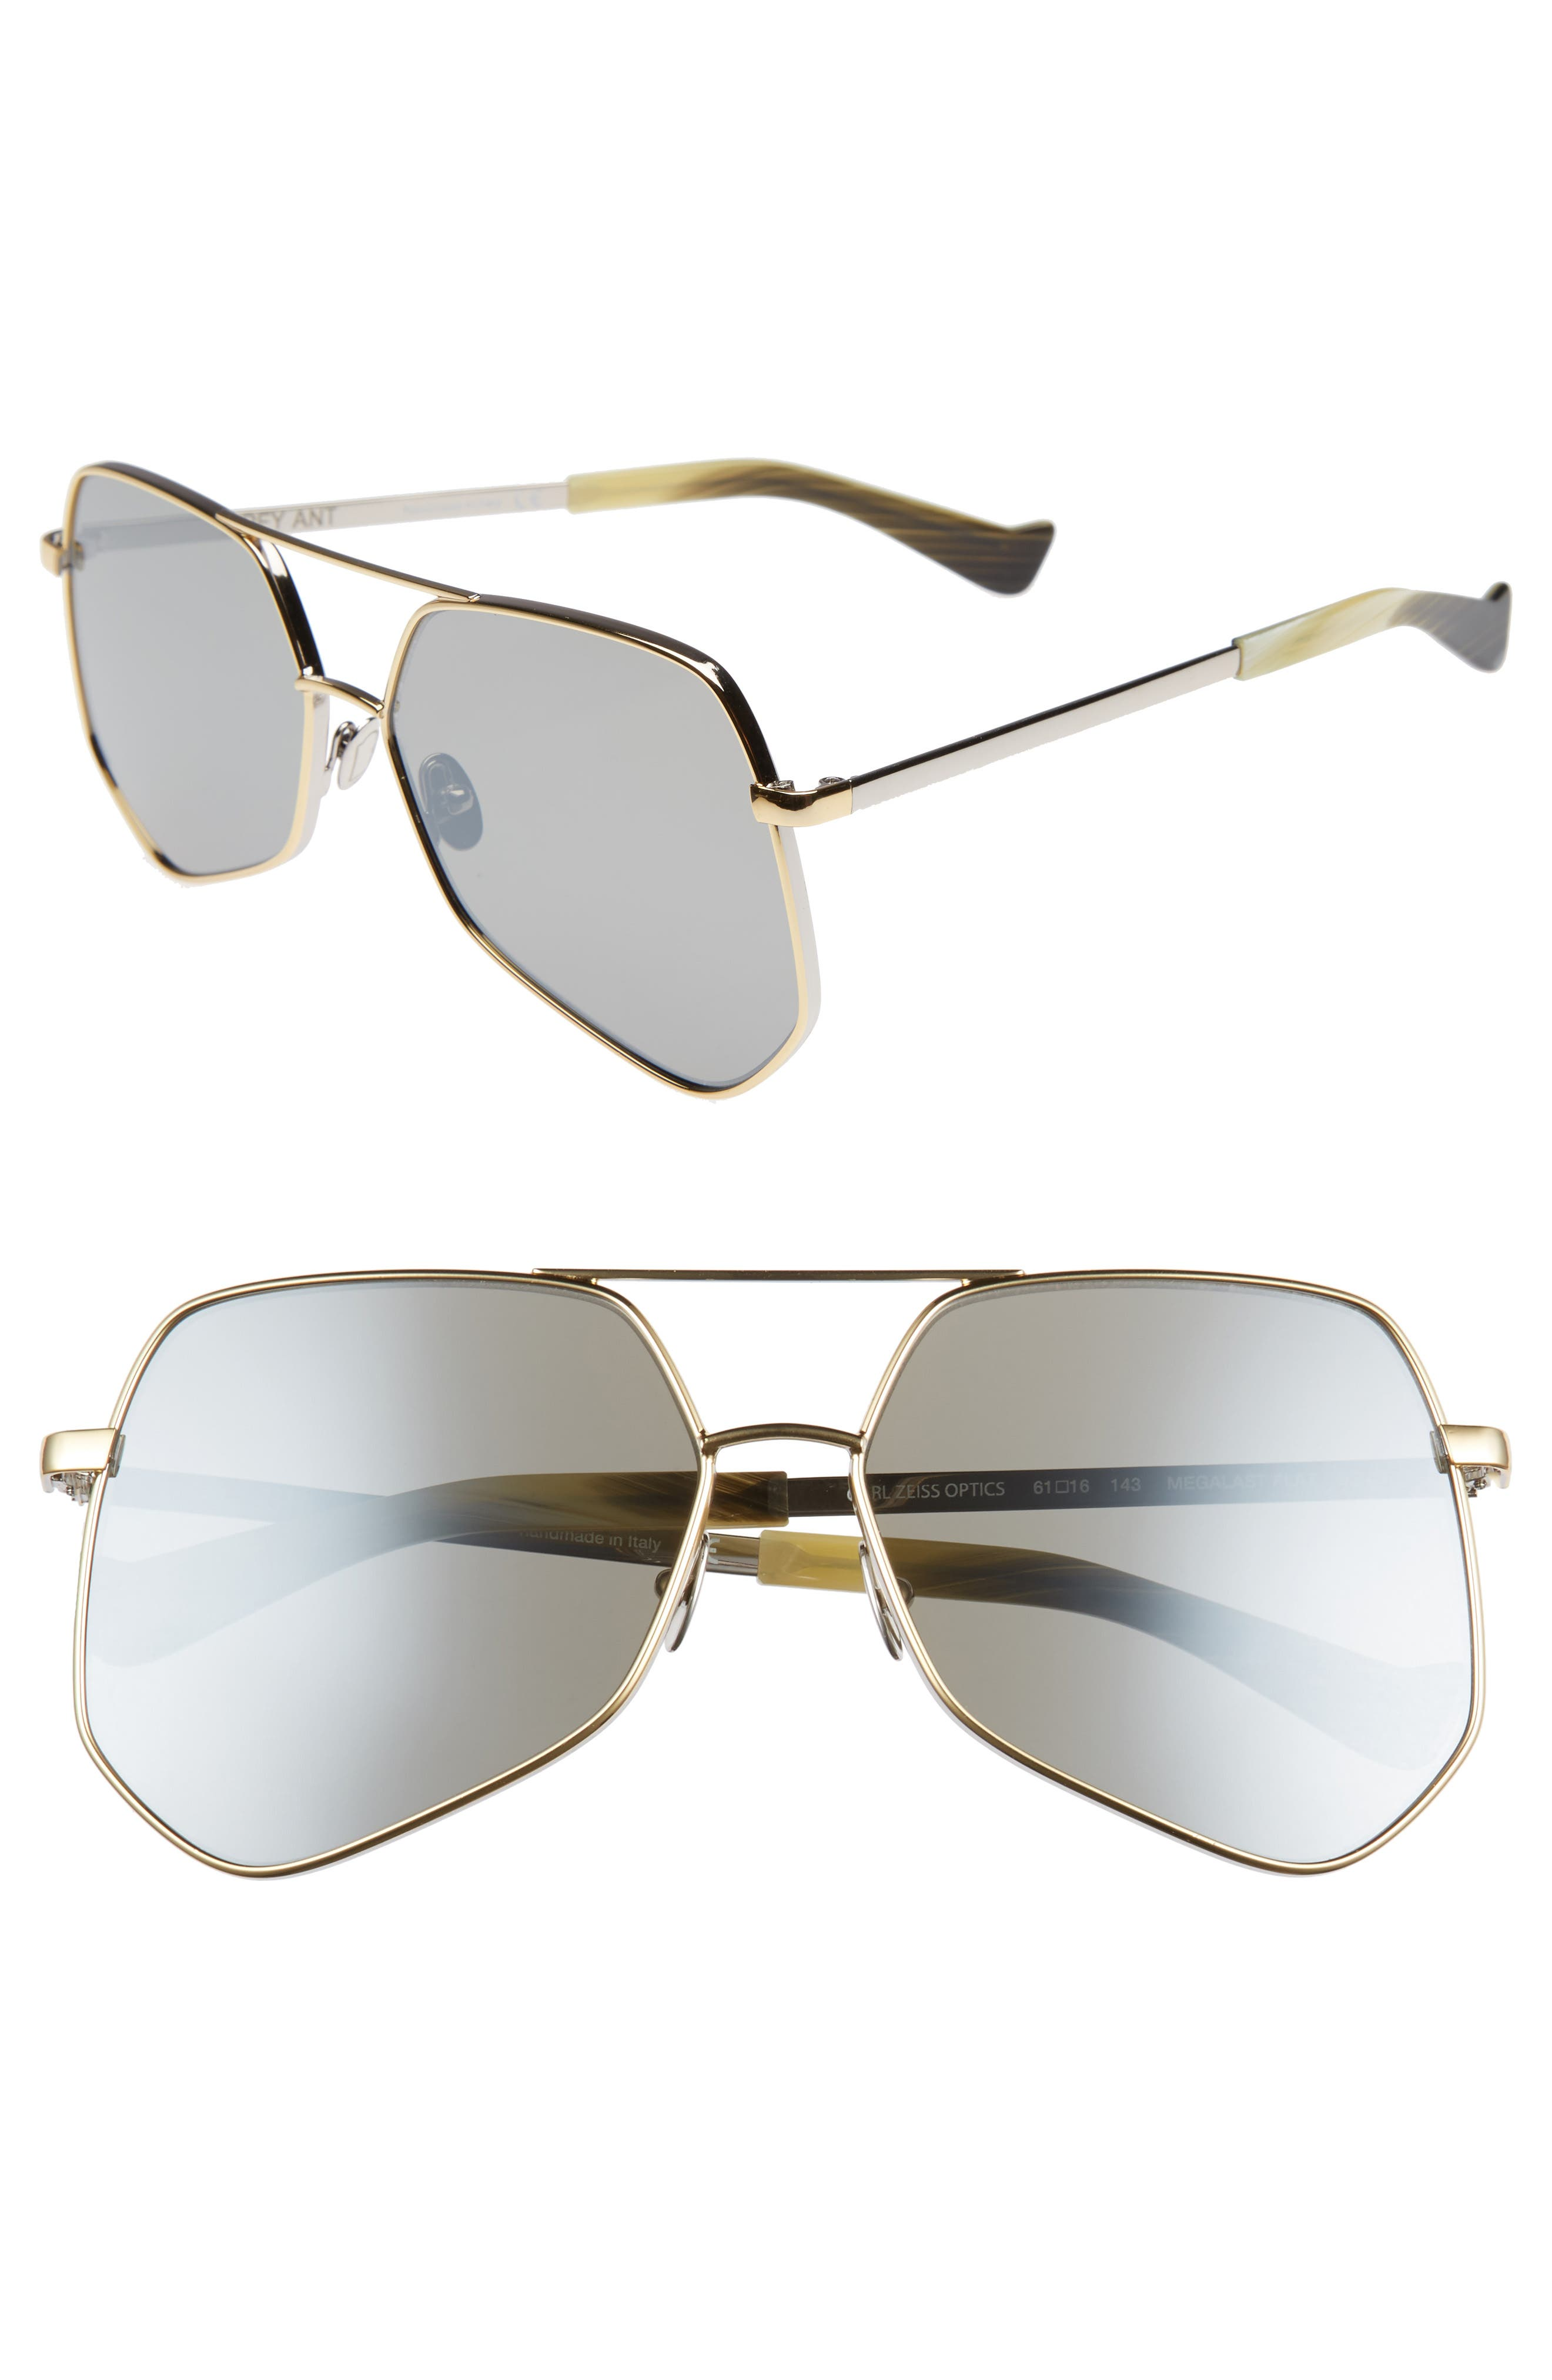 Megalast Flat 61mm Sunglasses,                         Main,                         color, Silver Gold/ Silver